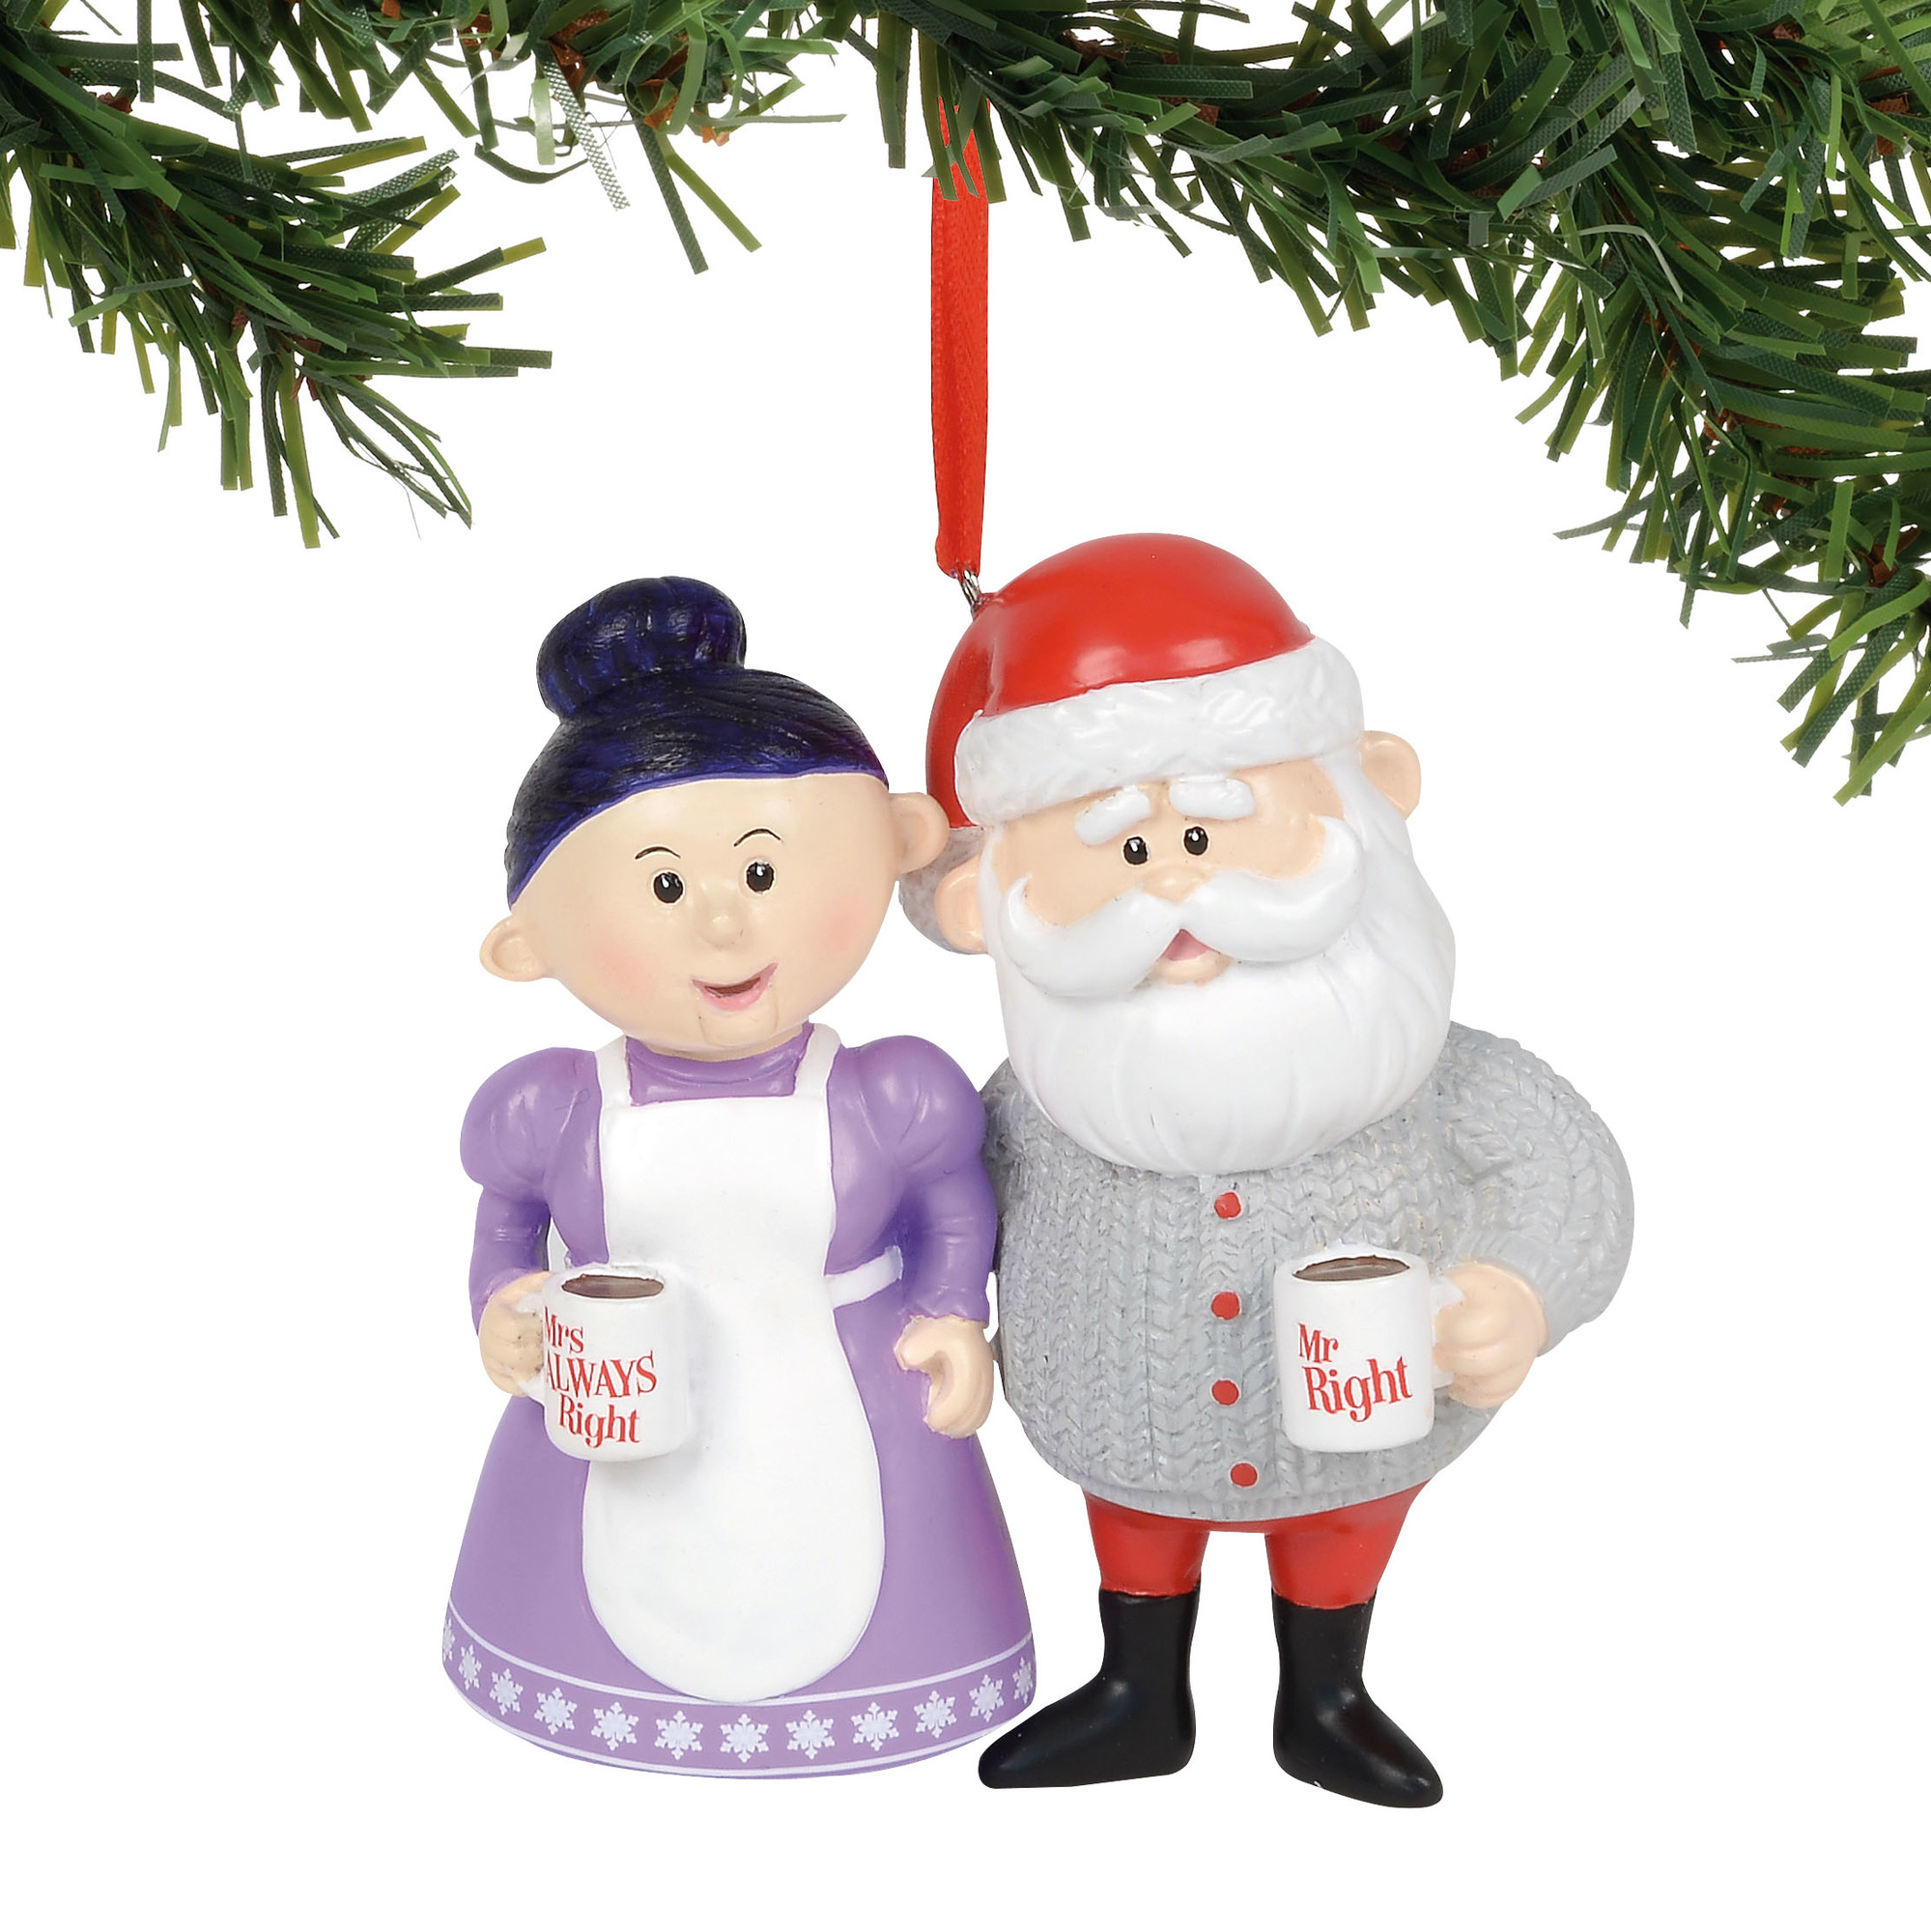 Department 56 Ornament - Rudolph - Mr. Right & Mrs. Always Right